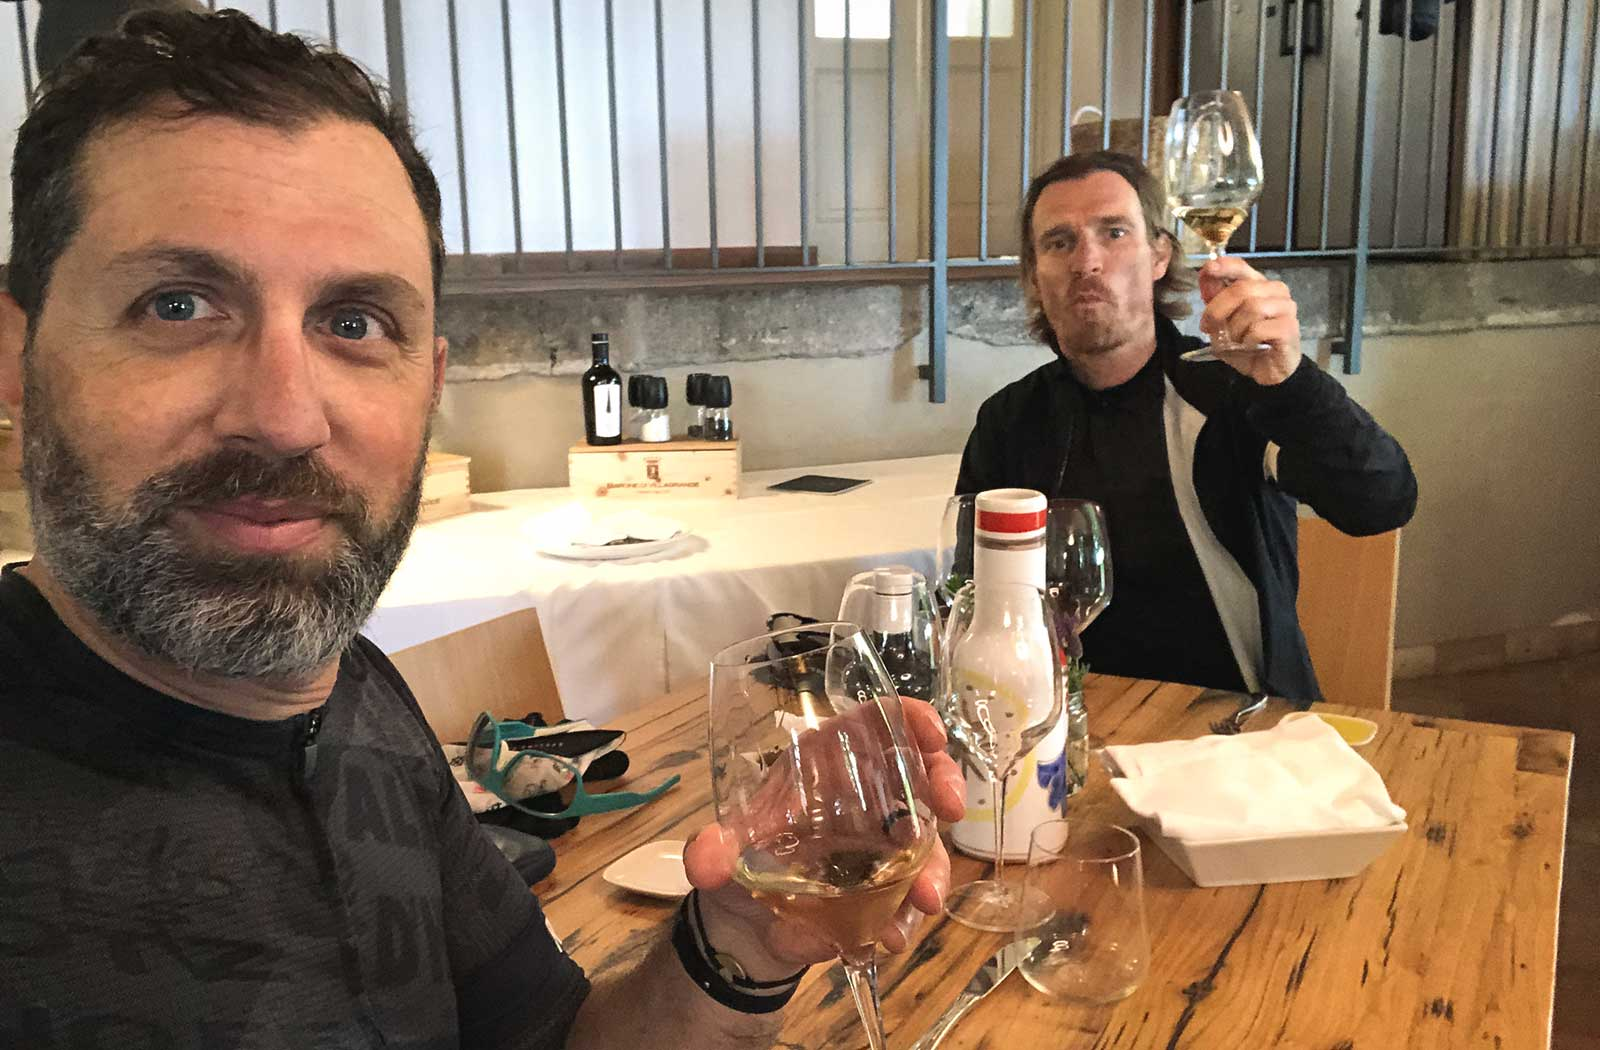 Sandro and Opstrup are drinking wine on Etna